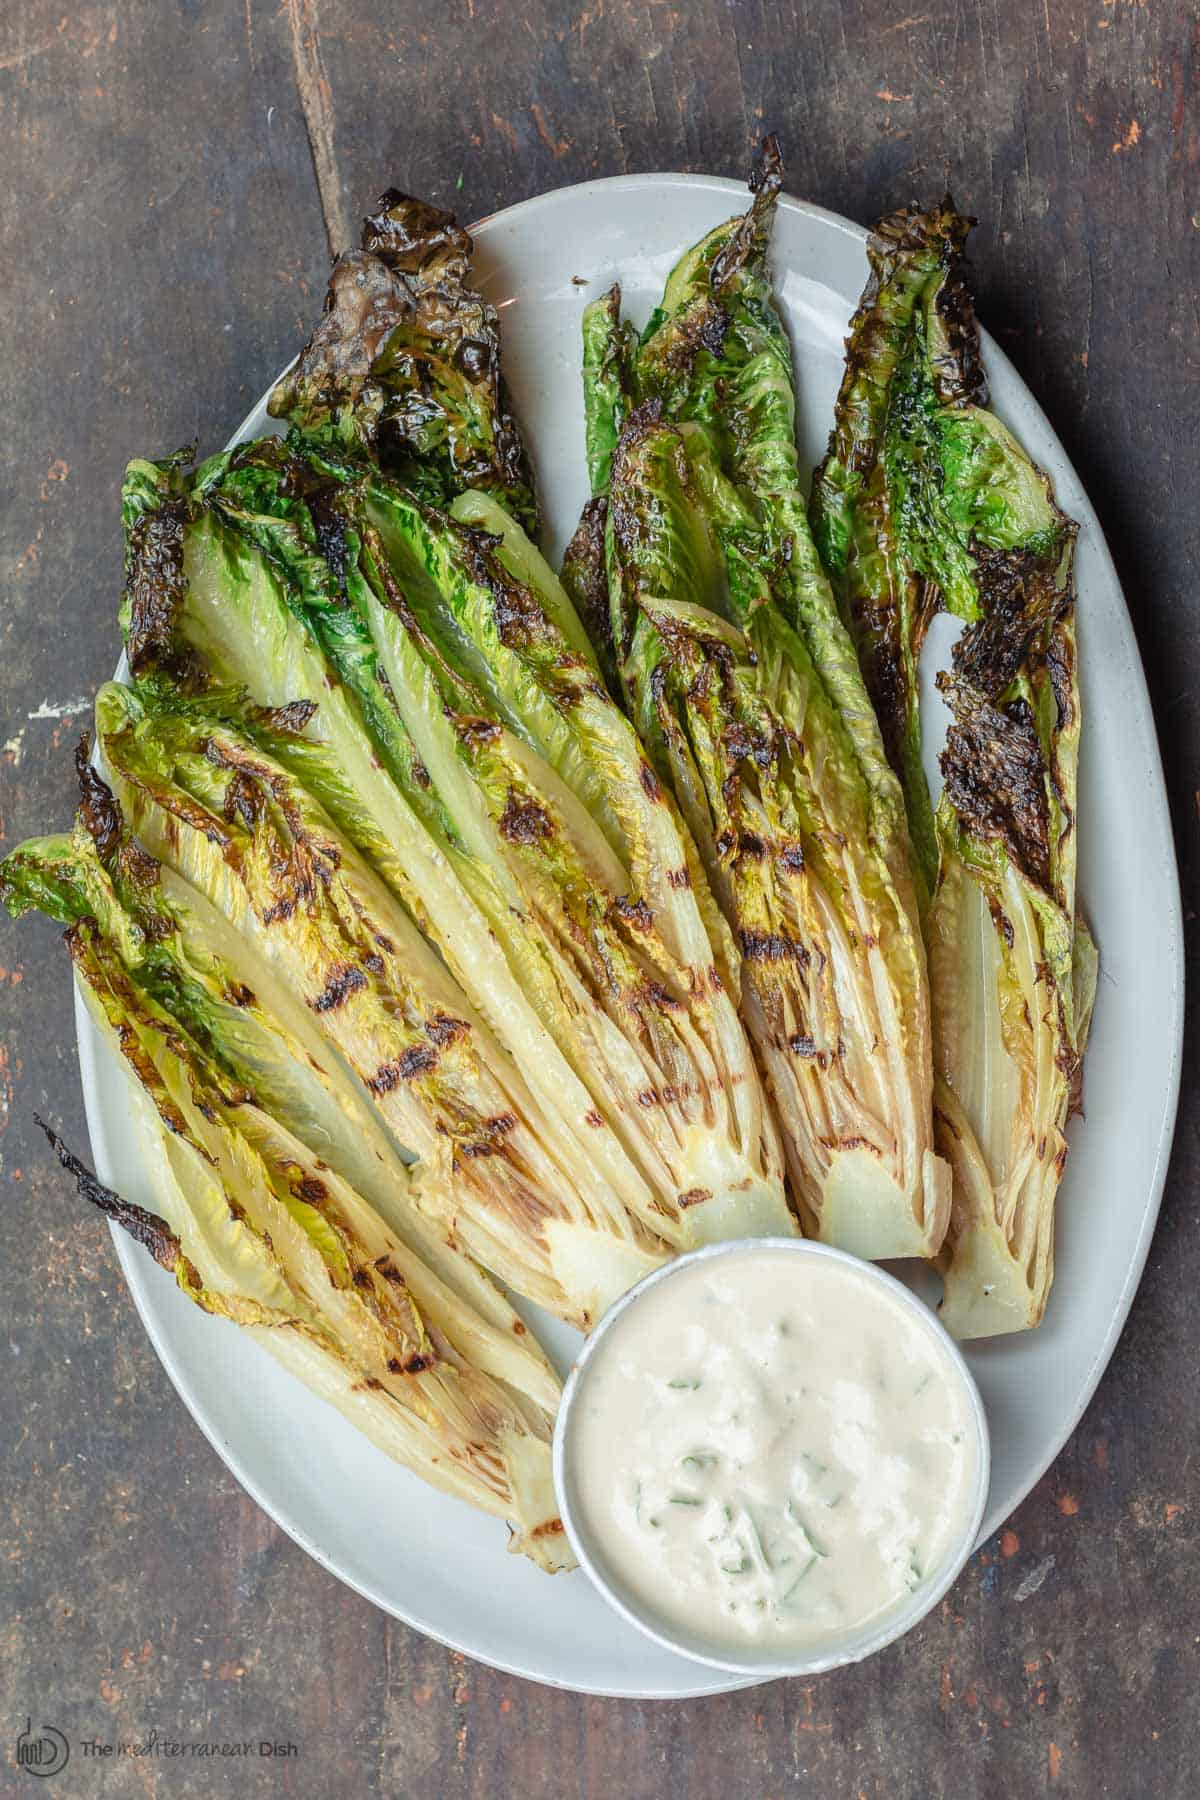 Grilled romaine lettuce with a side of tahini sauce